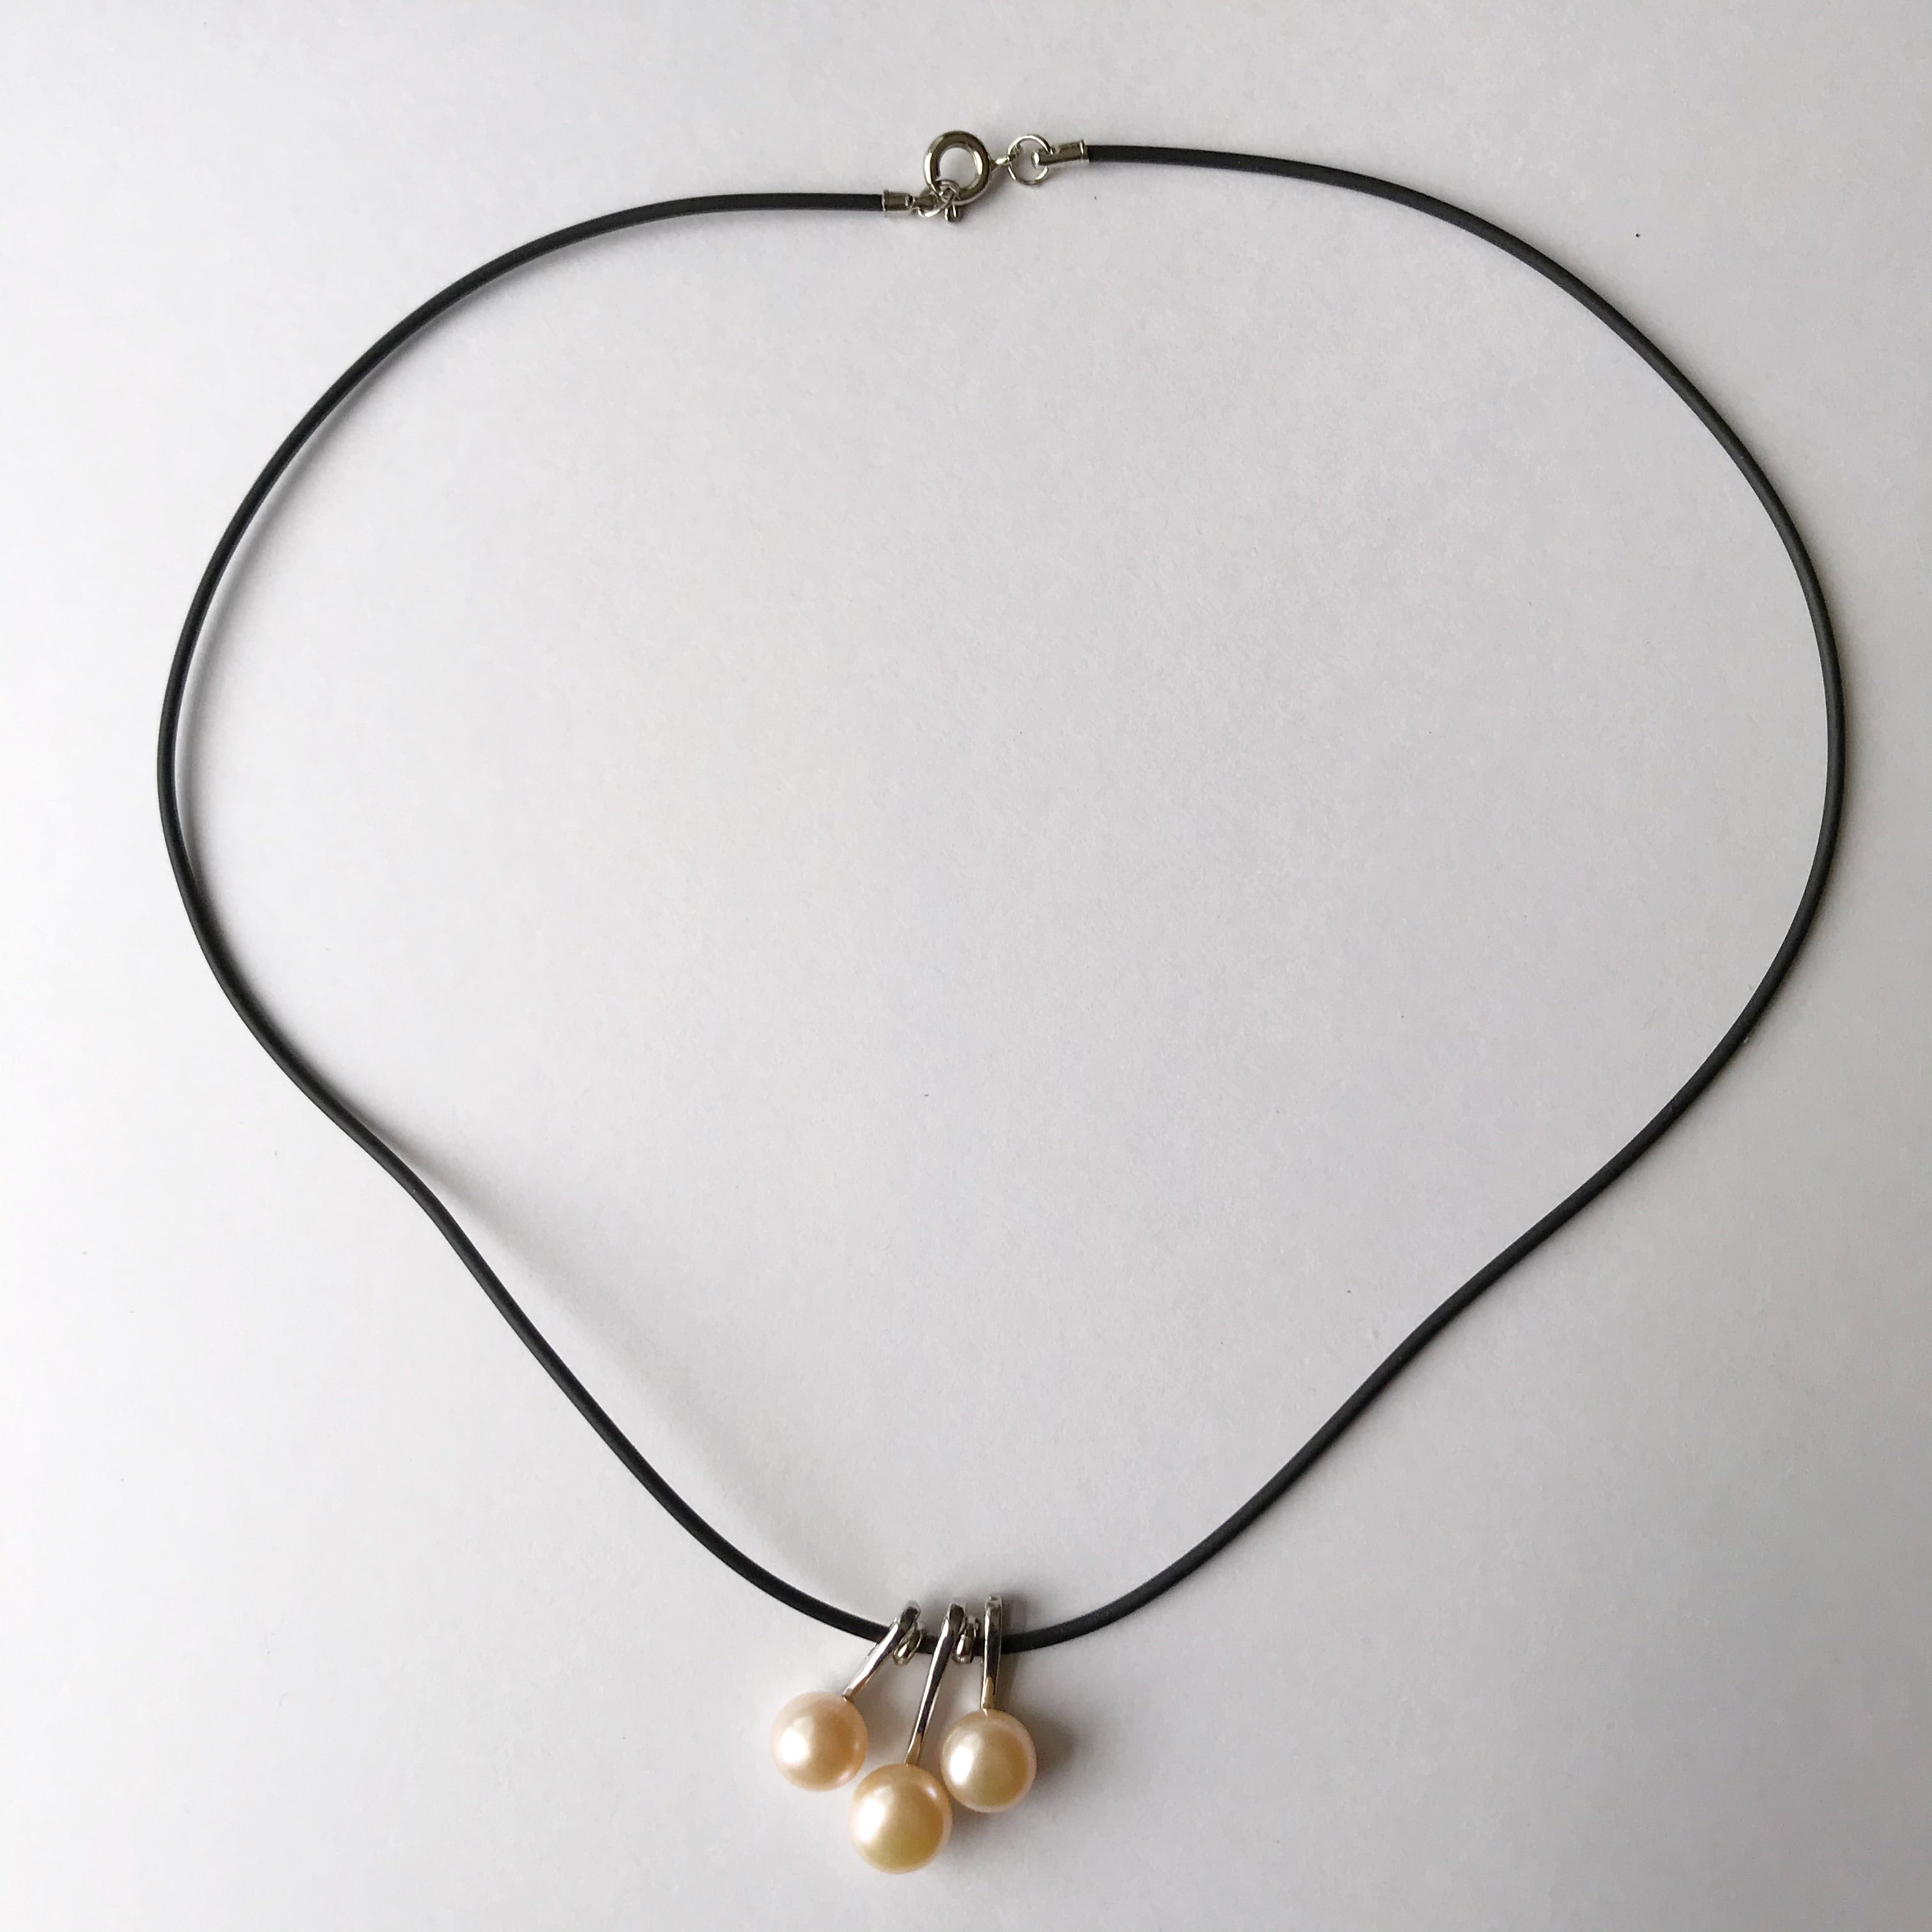 3 pearl necklace on a leather cord  necklace - Stylish n Trendier